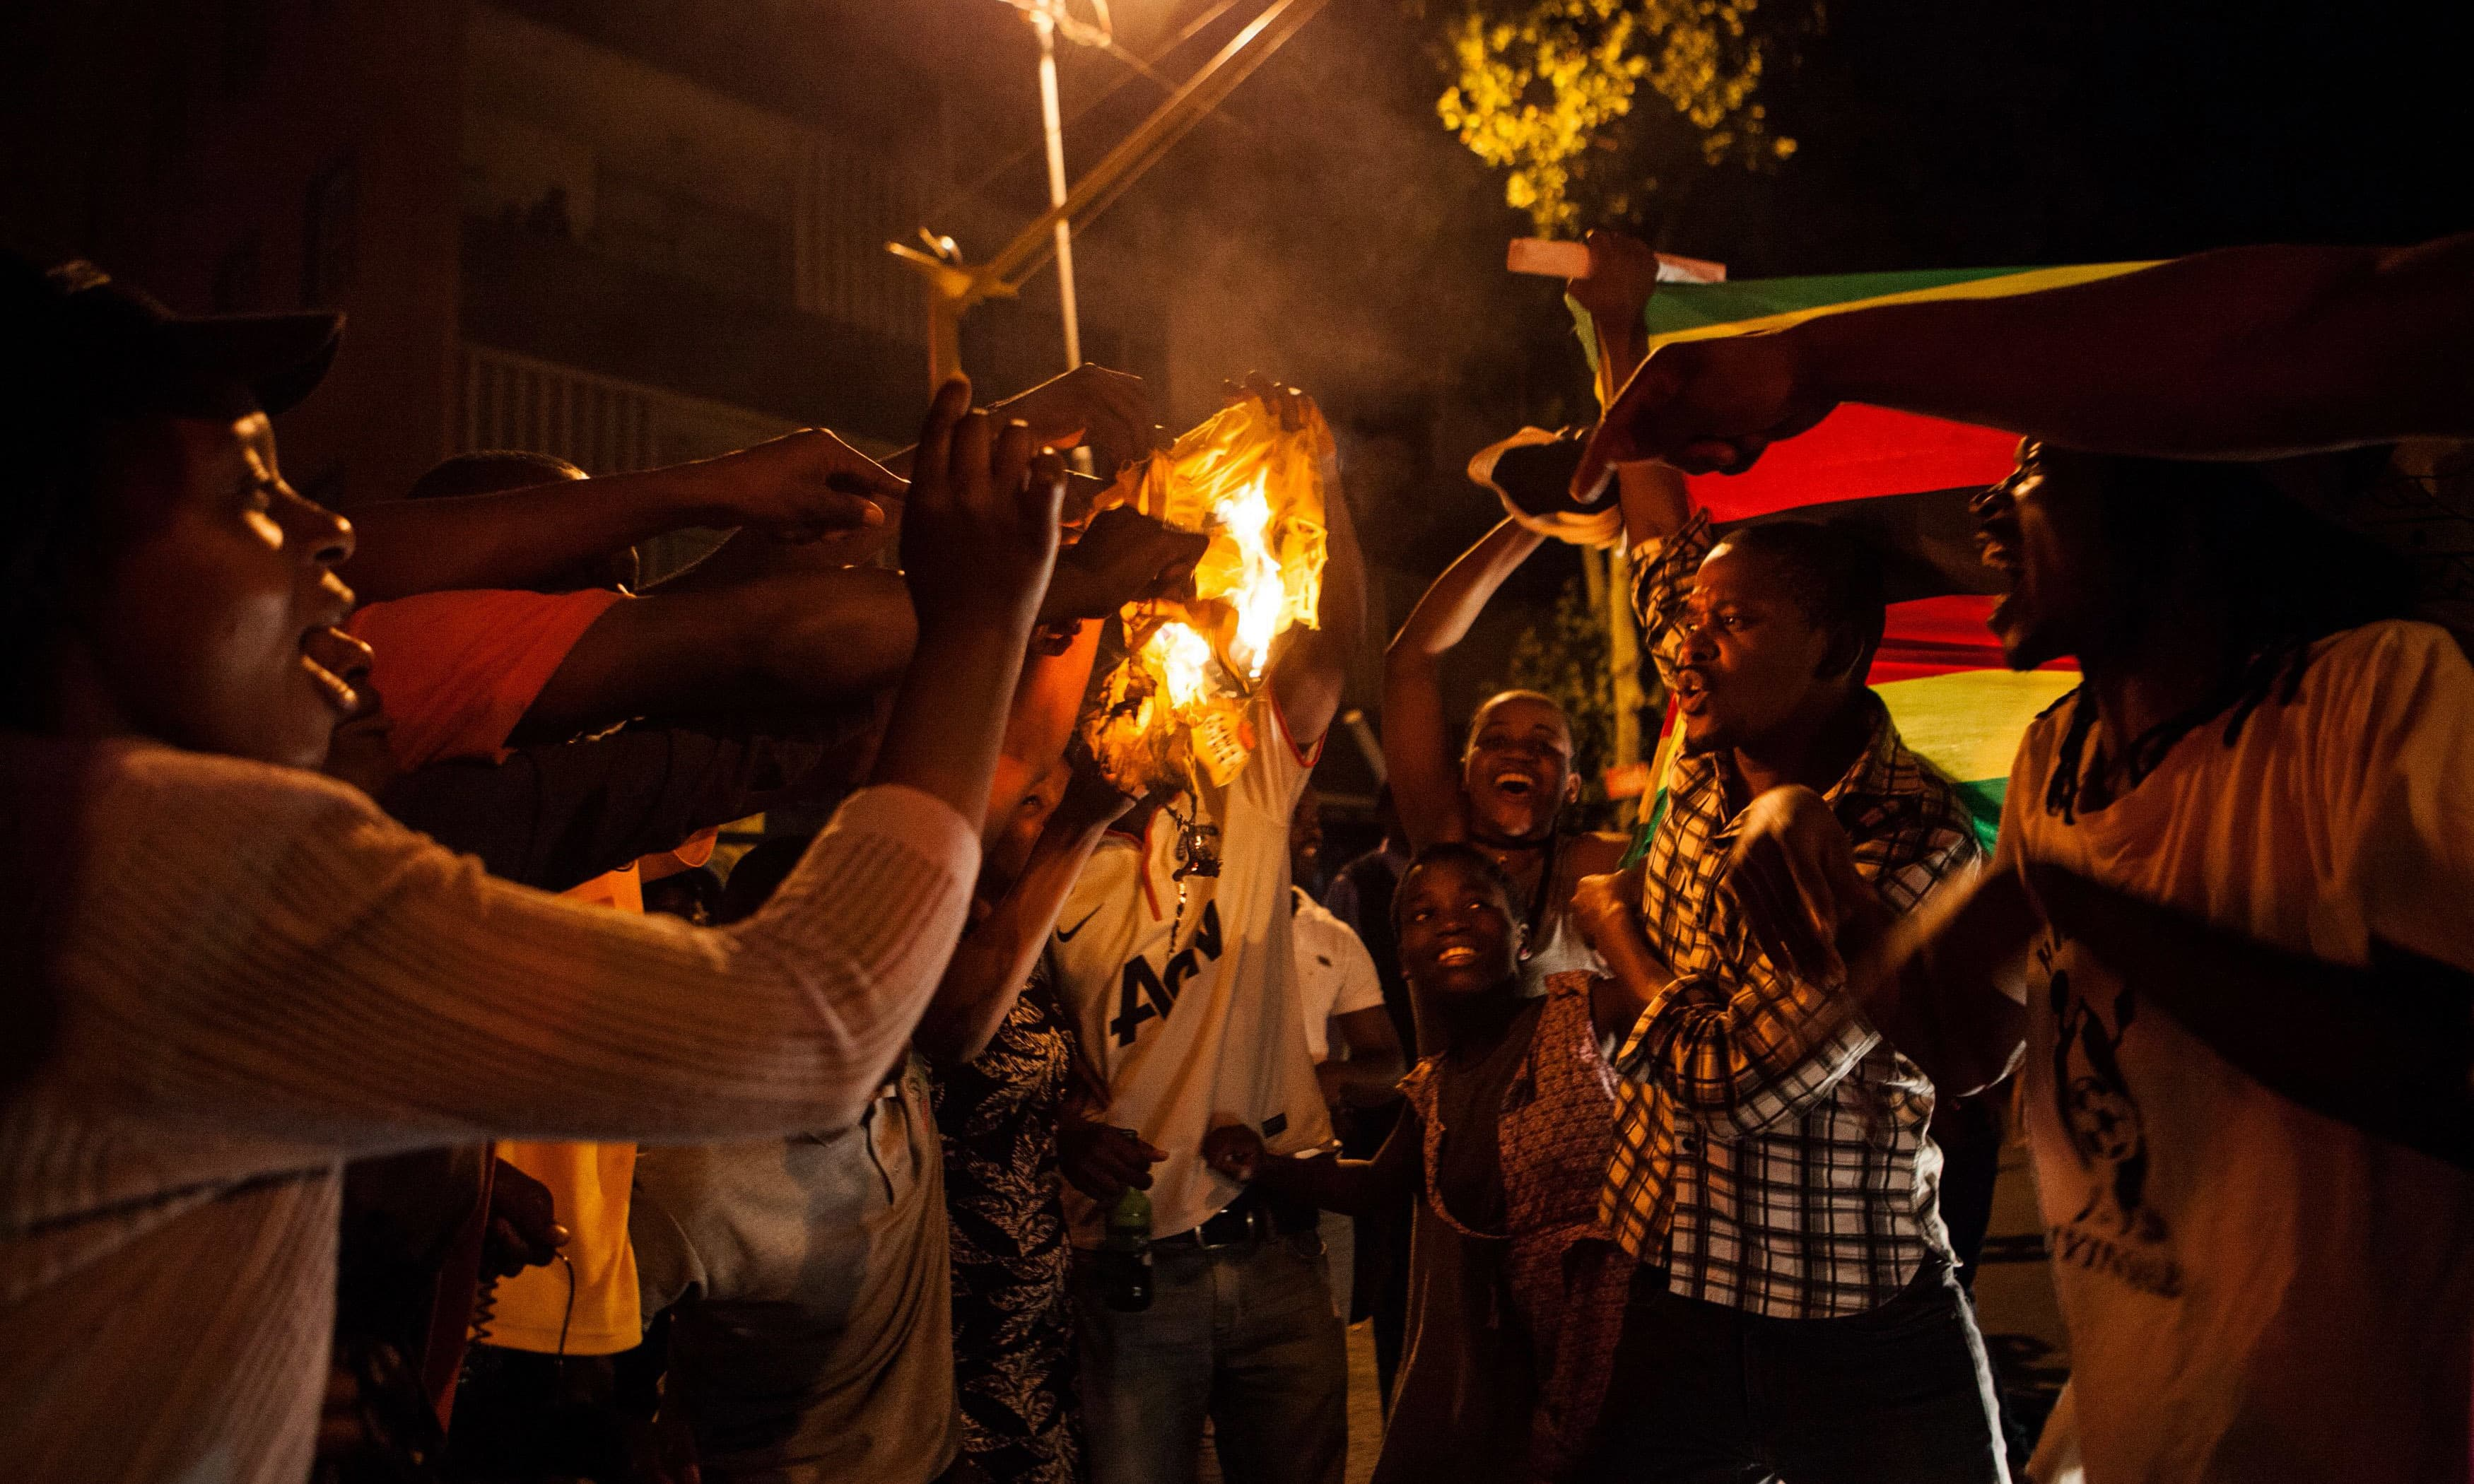 Zimbabwean nationals burn a shirt of Zimbabwe's ruling party, the Zimbabwe African National Union Patriotic Front (ZANU PF). —AFP